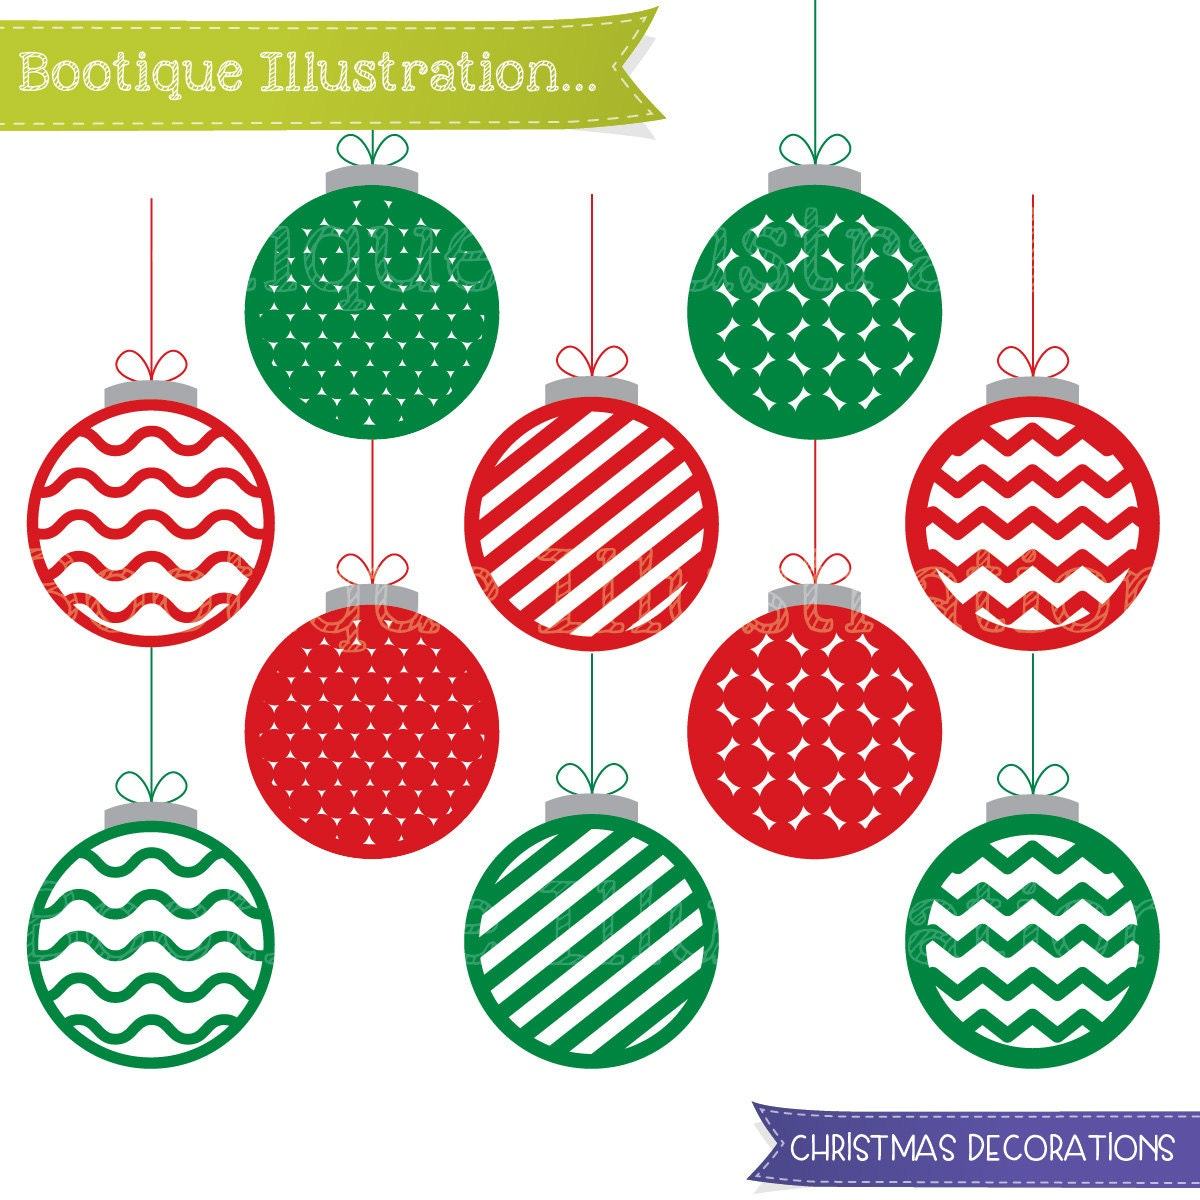 Christmas decorations images clipart - Christmas Decorations Clipart Set Christmas Baubles Clip Art Christmas Decorations Clip Art Traditional Christmas Clipart Xmas Clipart